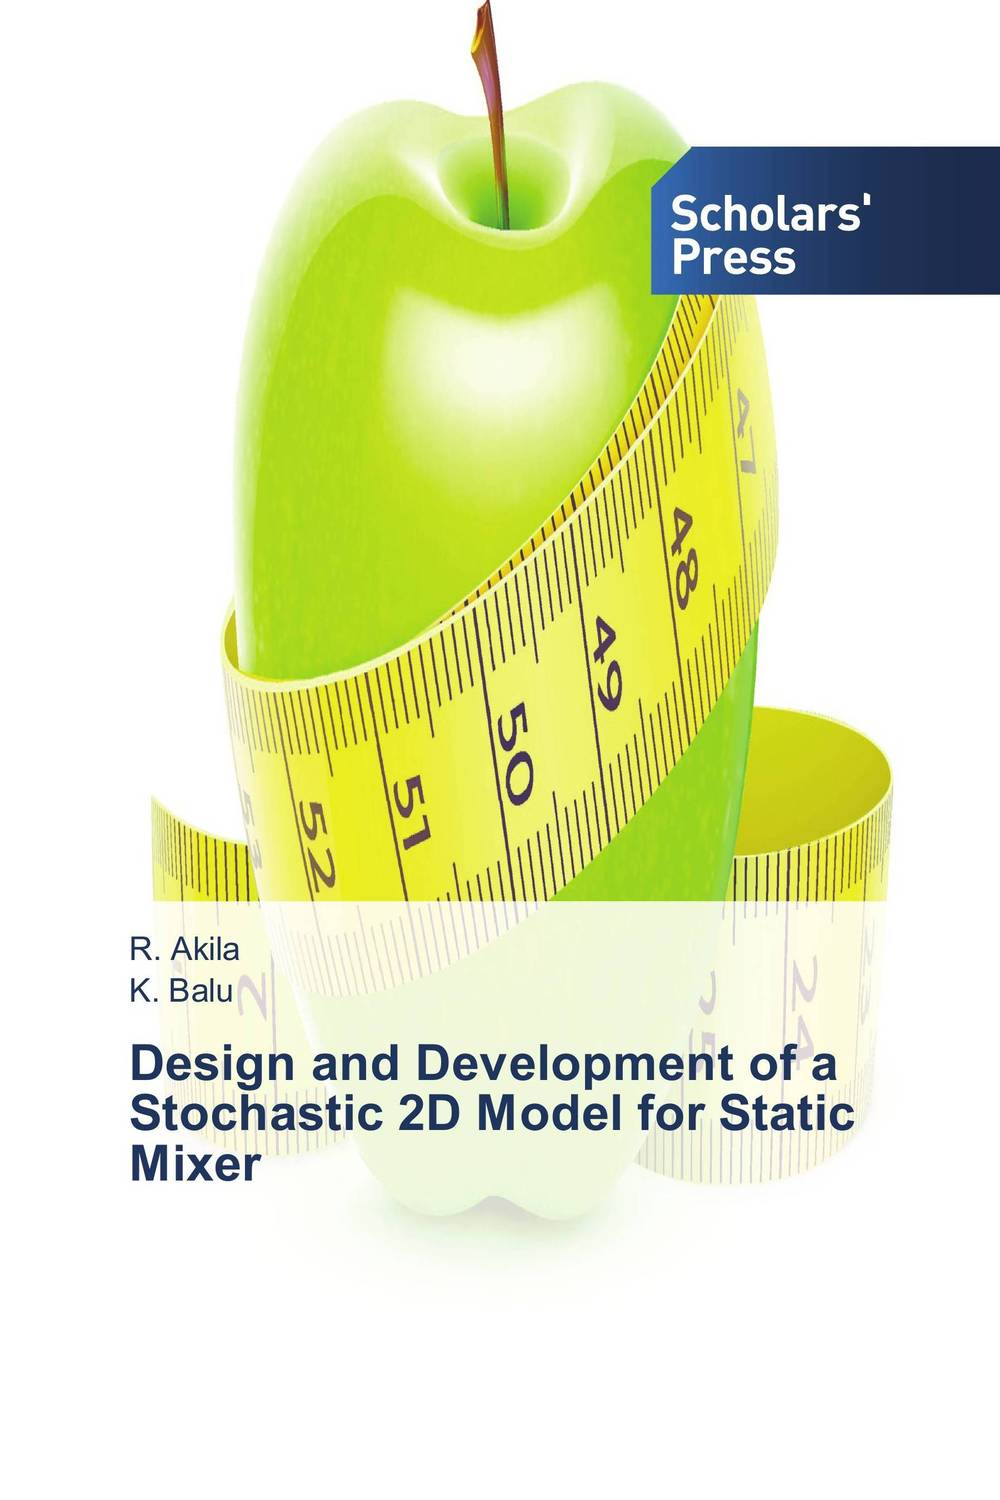 Design and Development of a Stochastic 2D Model for Static Mixer kunchi madhavi and tirupathi rao padi stochastic modeling